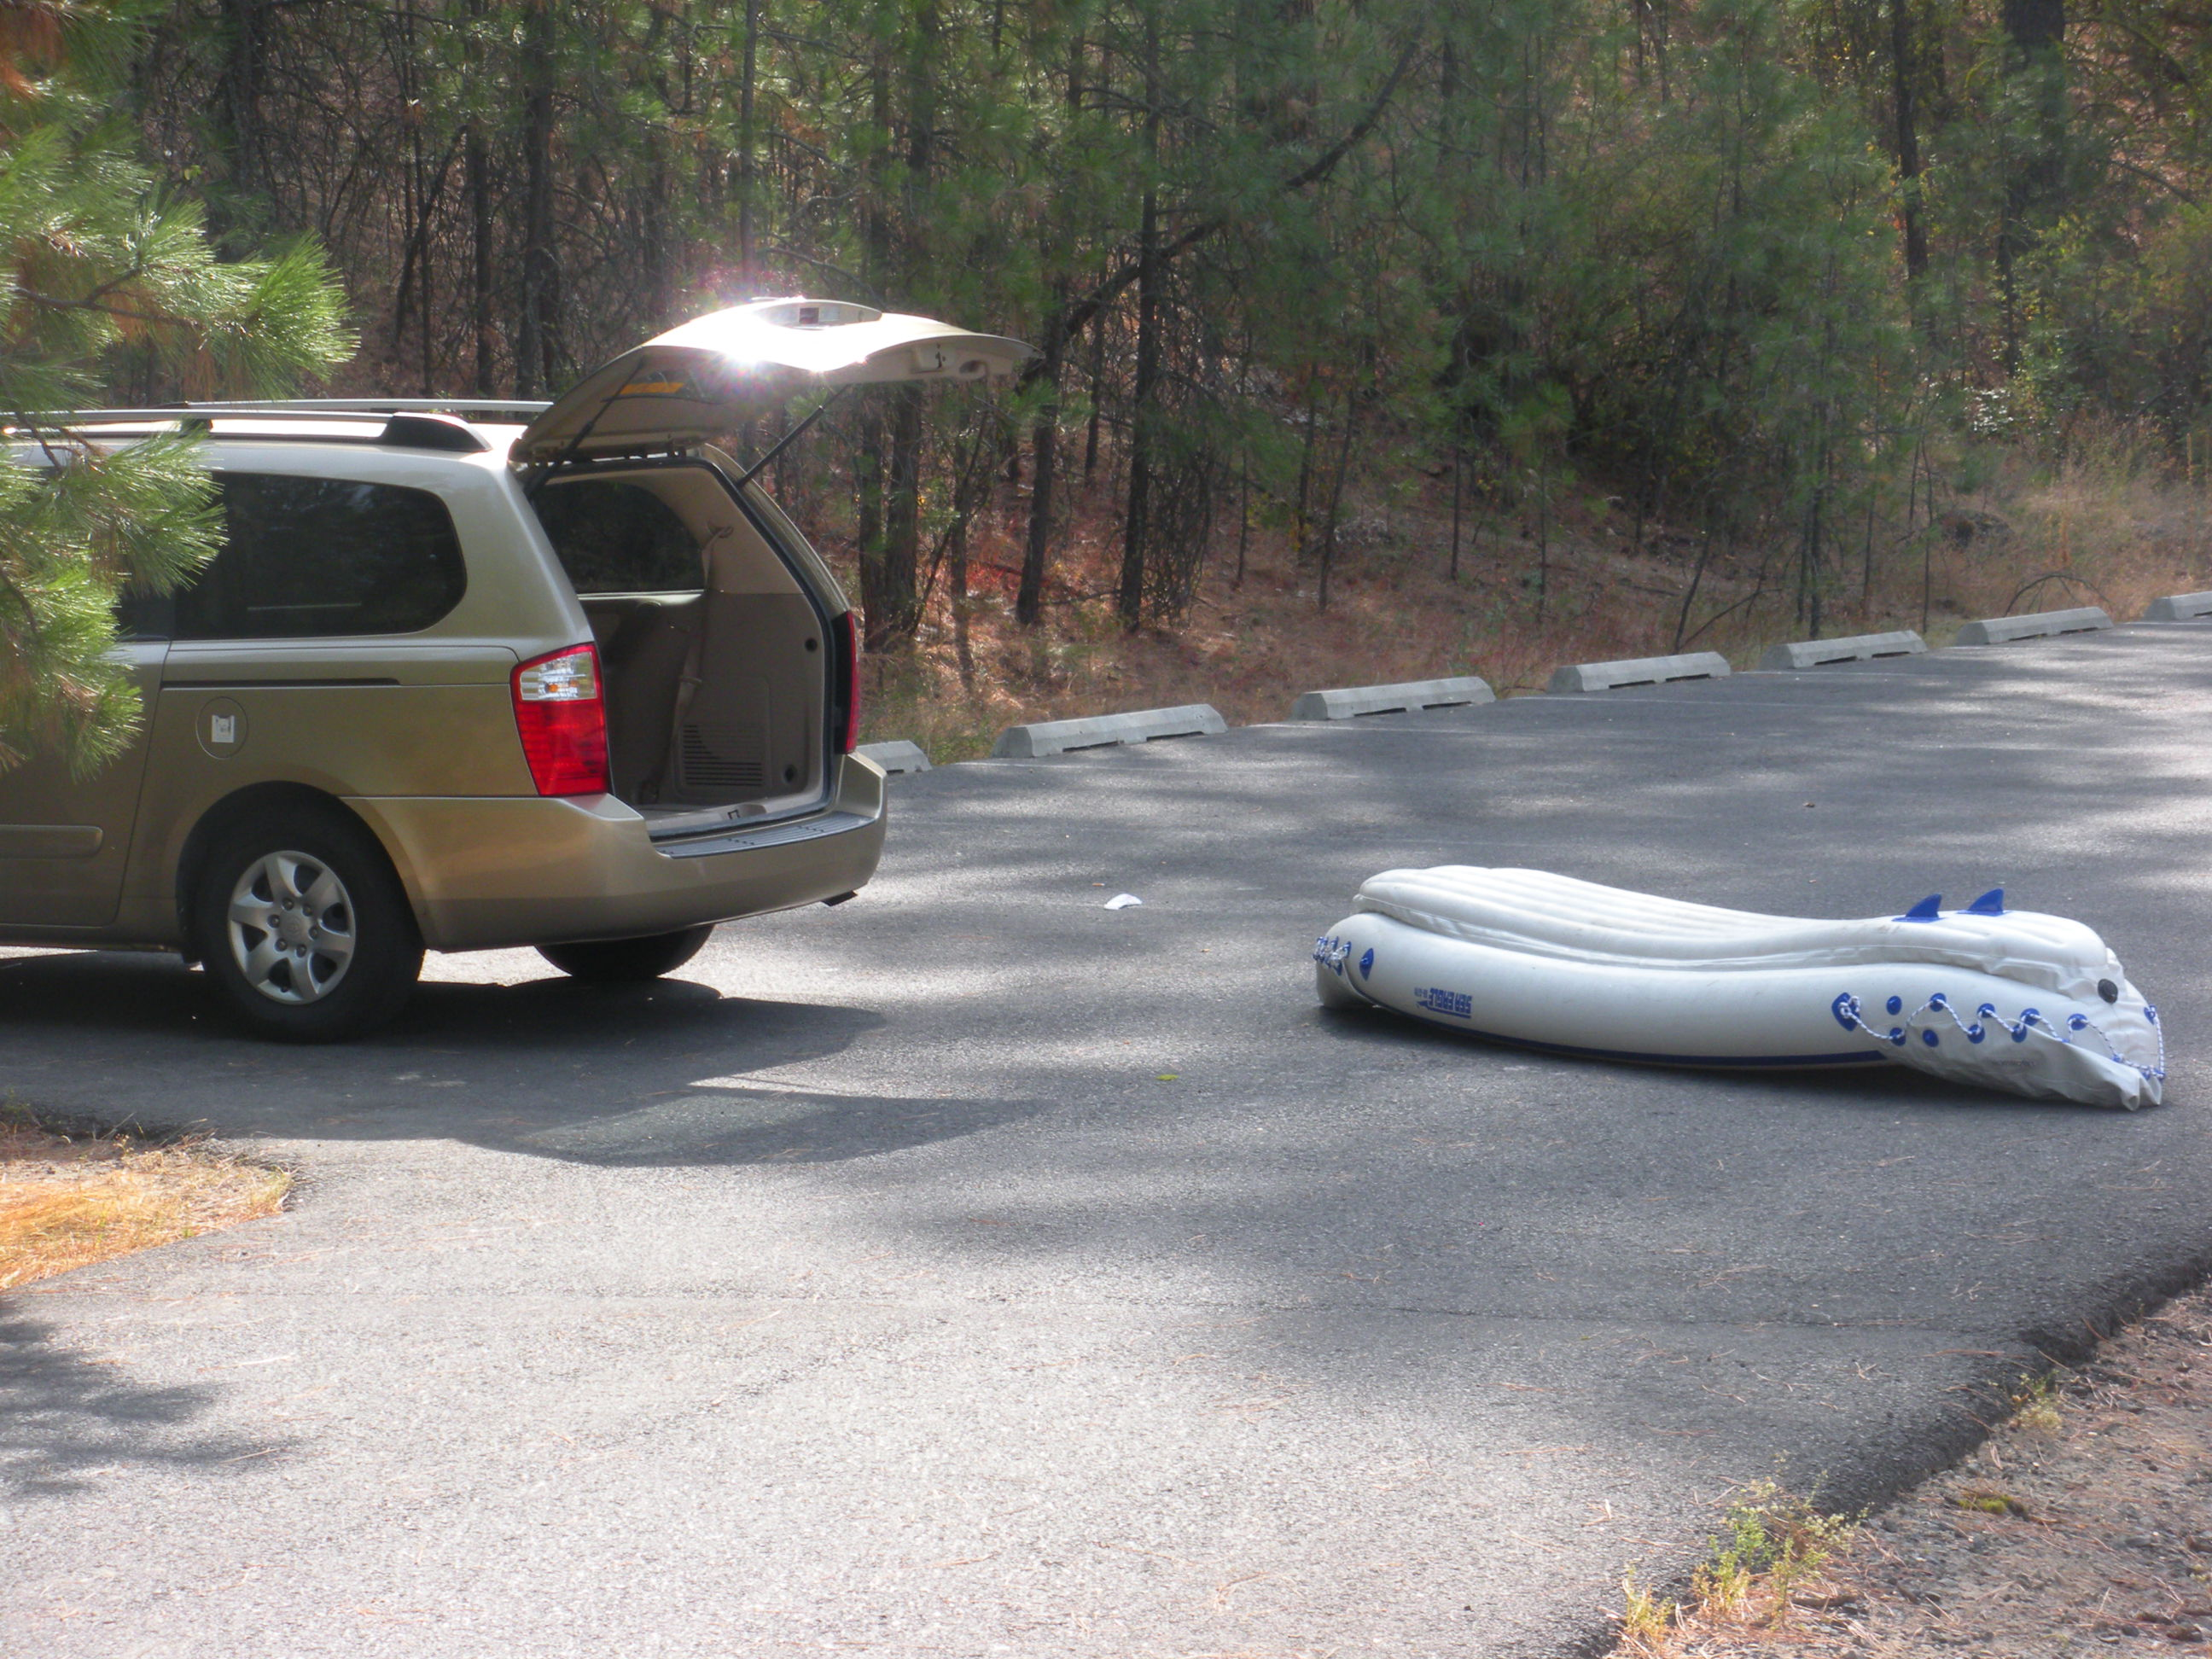 draining the kayak and packing up